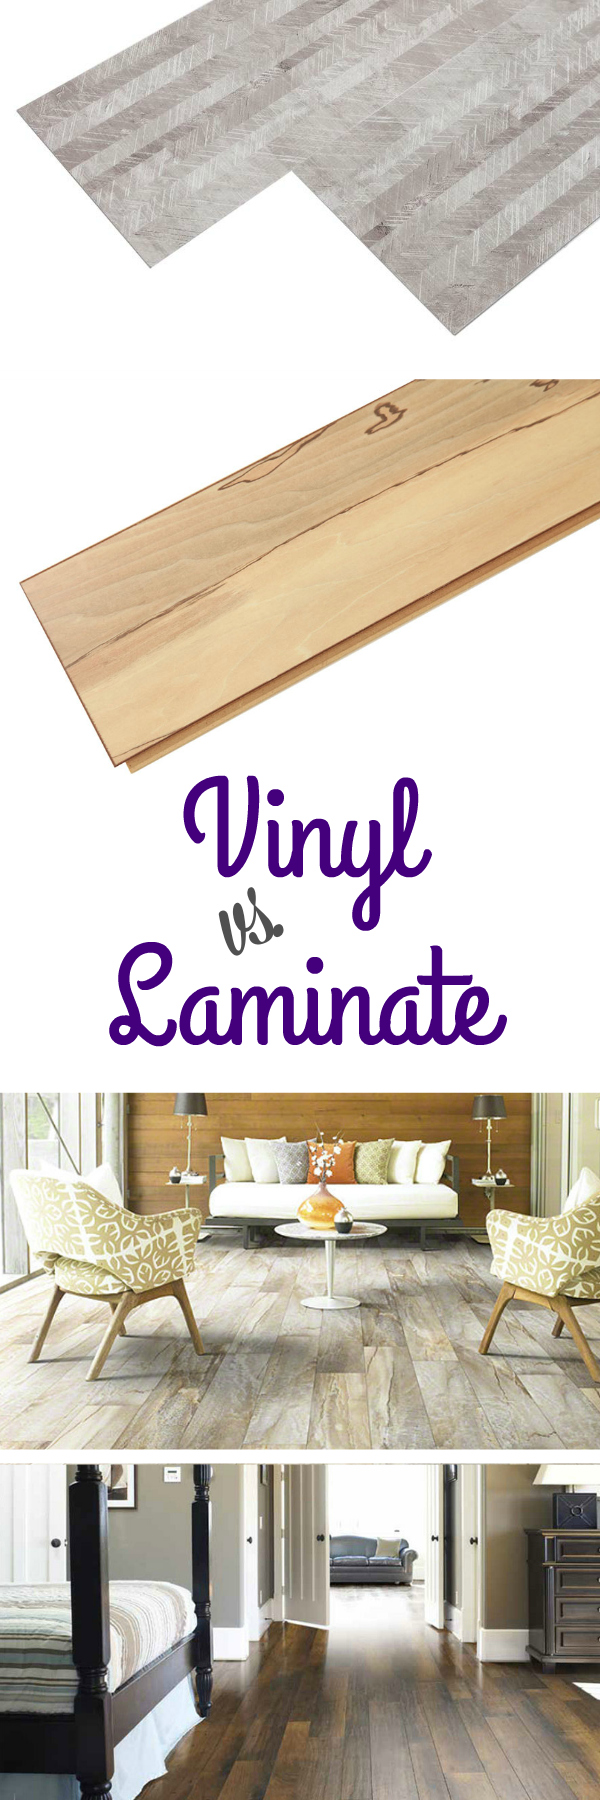 Vinyl vs. Laminate Flooring: Many people don't know the difference between vinyl flooring and laminate flooring. Learn the pros and cons of each category broken down from everything from cost to effect on environment. Choose the best wood or stone look option for you with this helpful flooring guide.